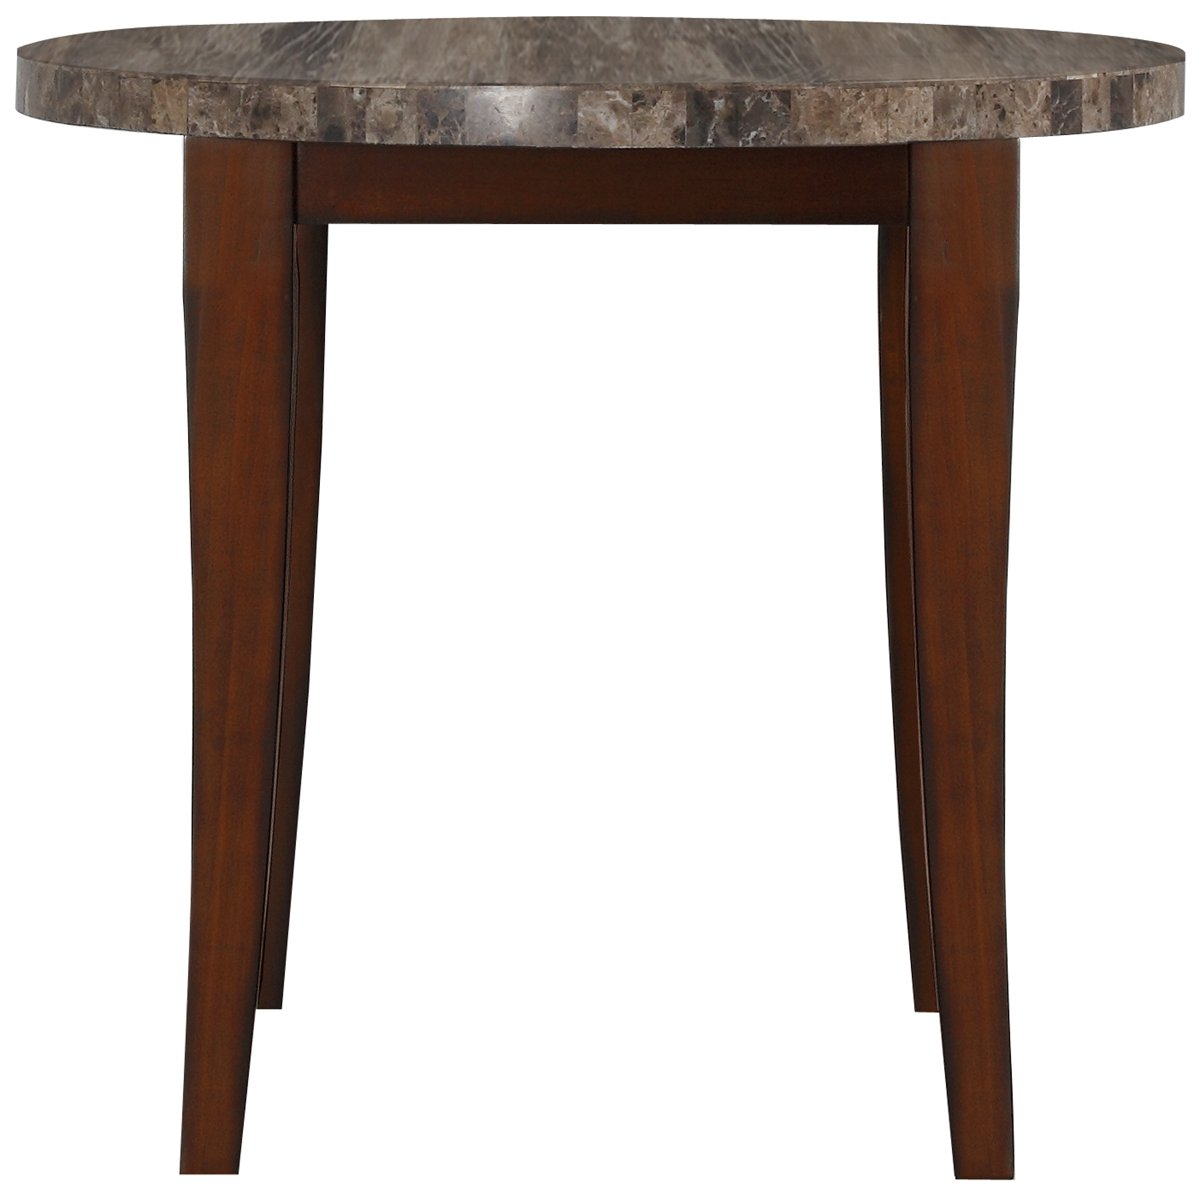 city lghts round marble high dining table : S1001250224F00wid1200amphei1200ampfmtjpegampqlt850ampopsharpen0ampresModesharp2ampopusm1180ampiccEmbed0 from www.cityfurniture.com size 1200 x 1200 jpeg 83kB